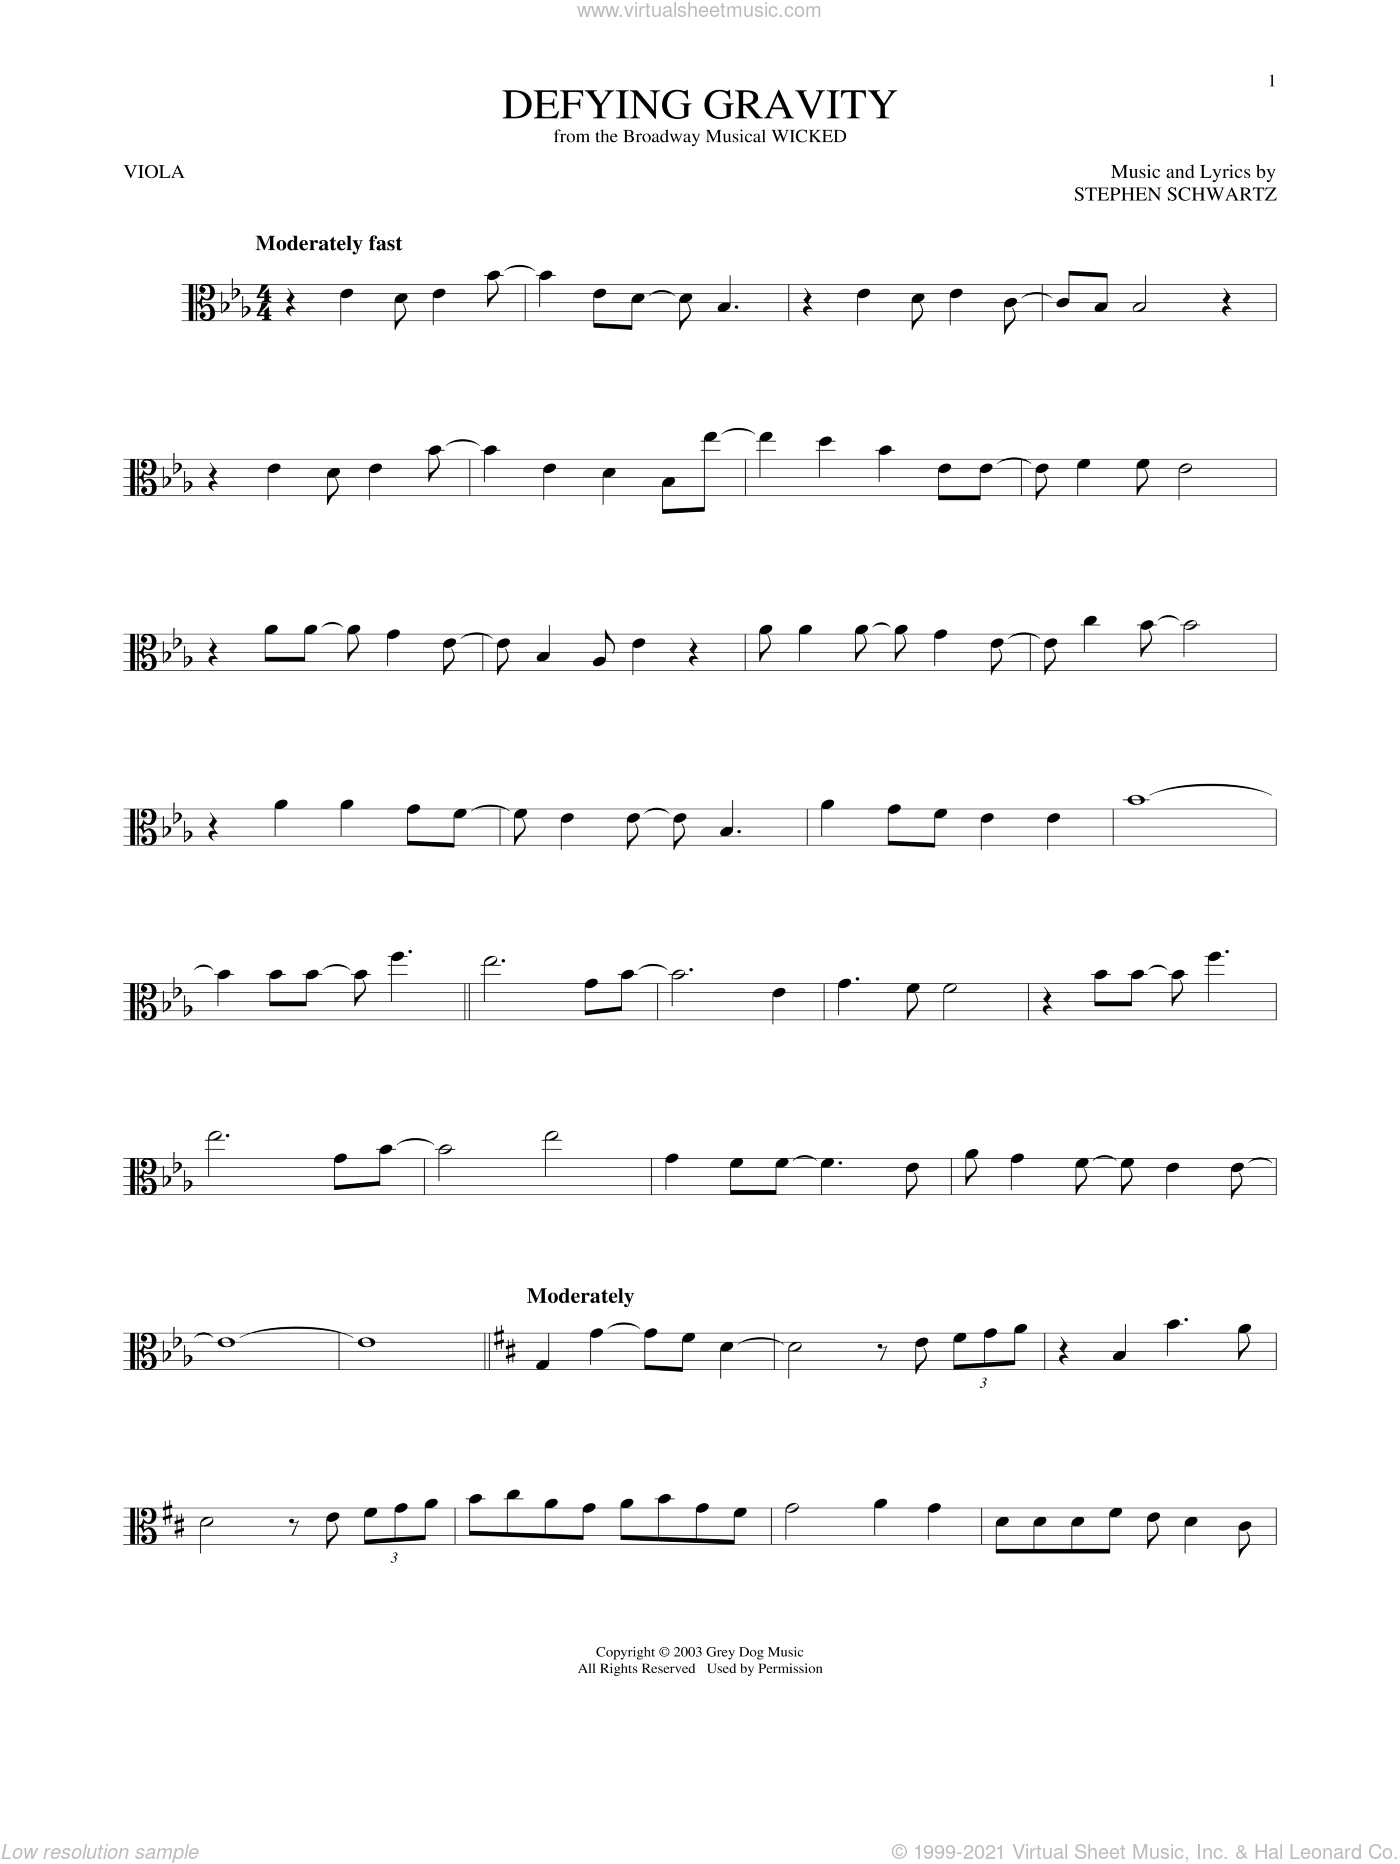 Defying Gravity sheet music for viola solo by Stephen Schwartz, intermediate skill level